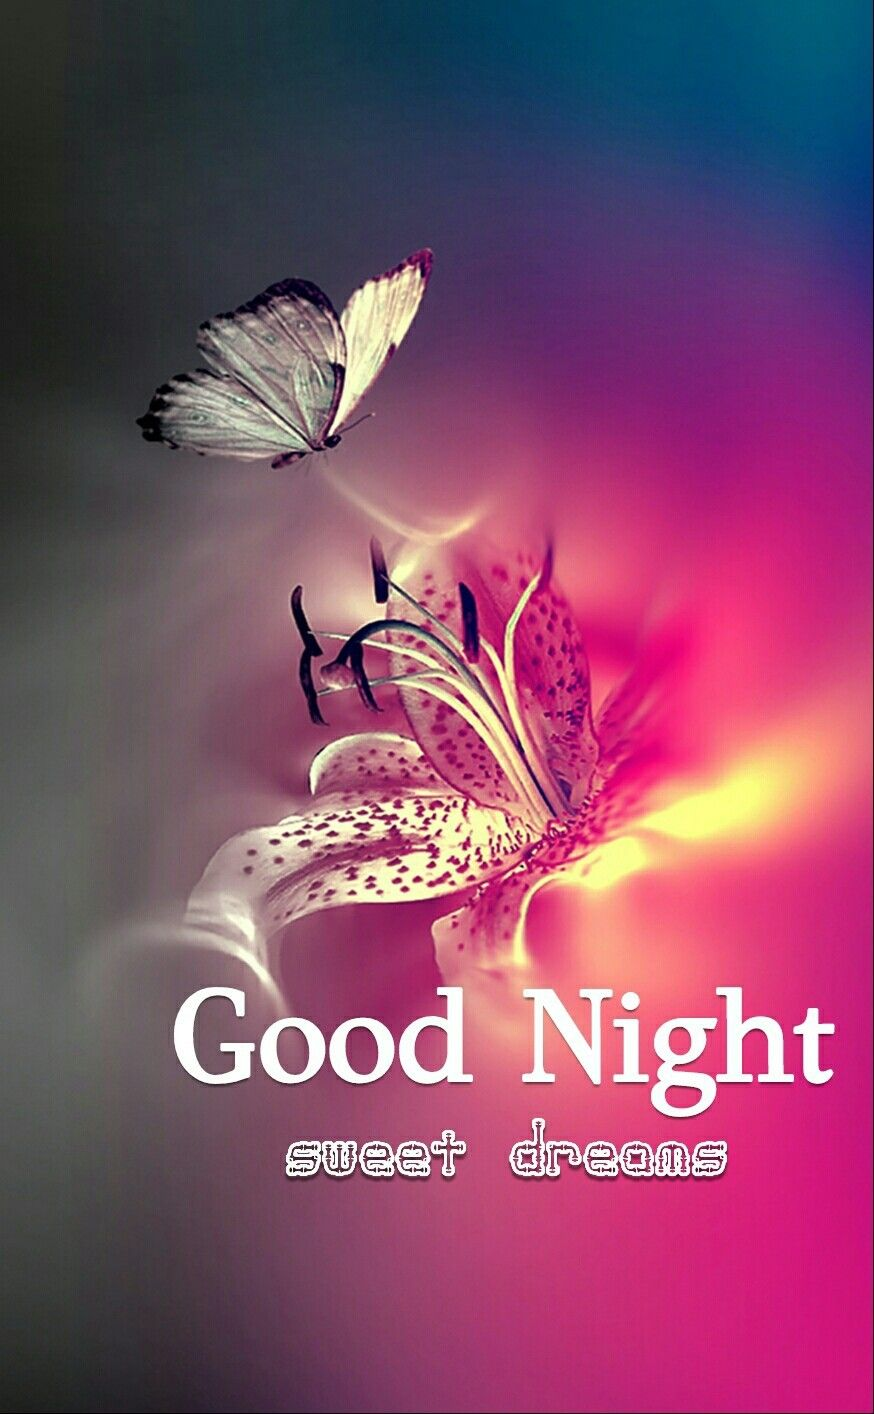 Goodnight sister sweet dreams  | Good night quotes